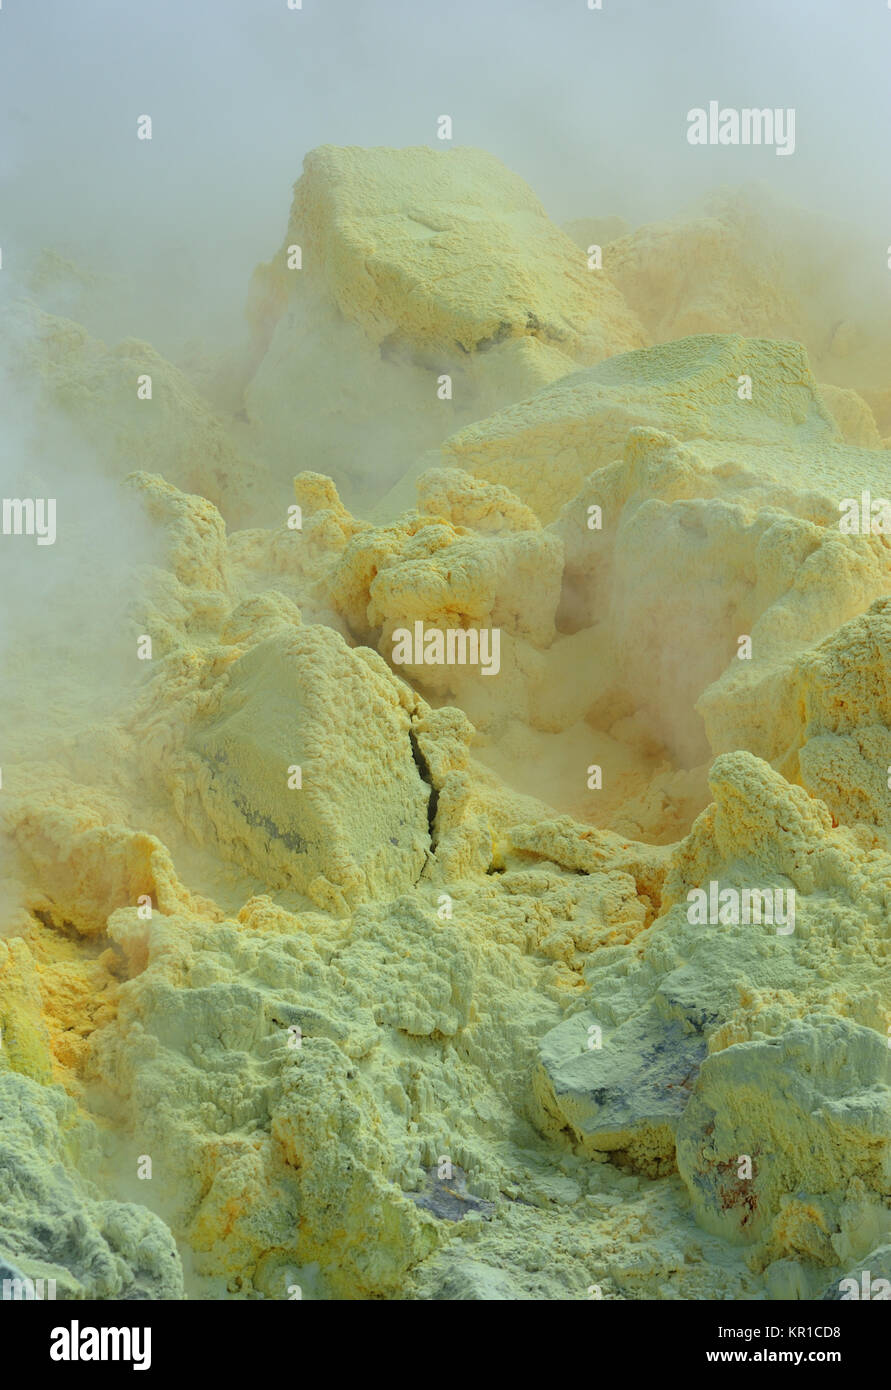 Clouds of sulphuric acid laden steam billow from active fumaroles and deposit sulphur on lava rocks within the caldera - Stock Image